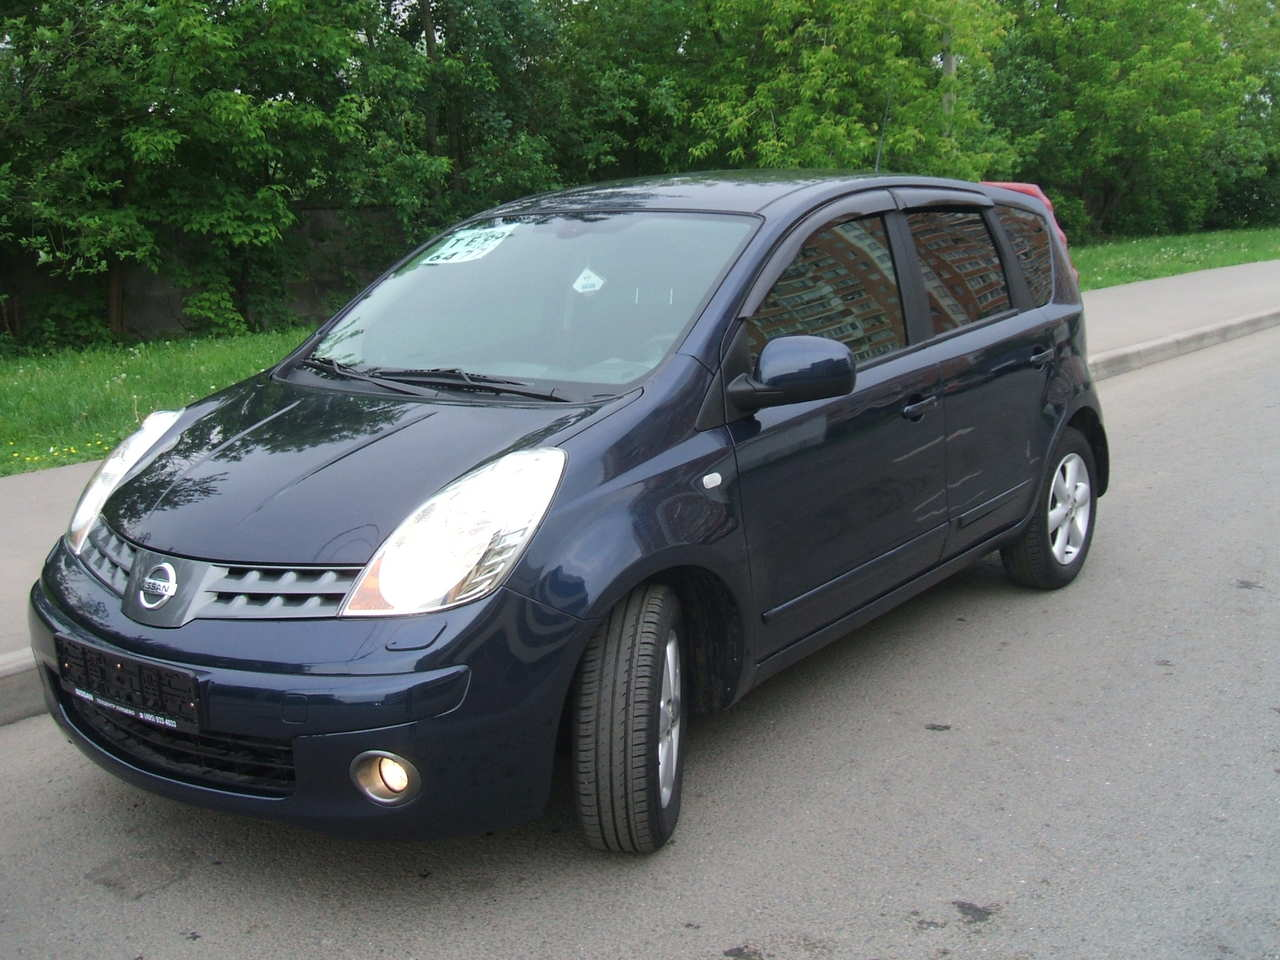 used 2008 nissan note photos 1598cc gasoline ff automatic for sale. Black Bedroom Furniture Sets. Home Design Ideas